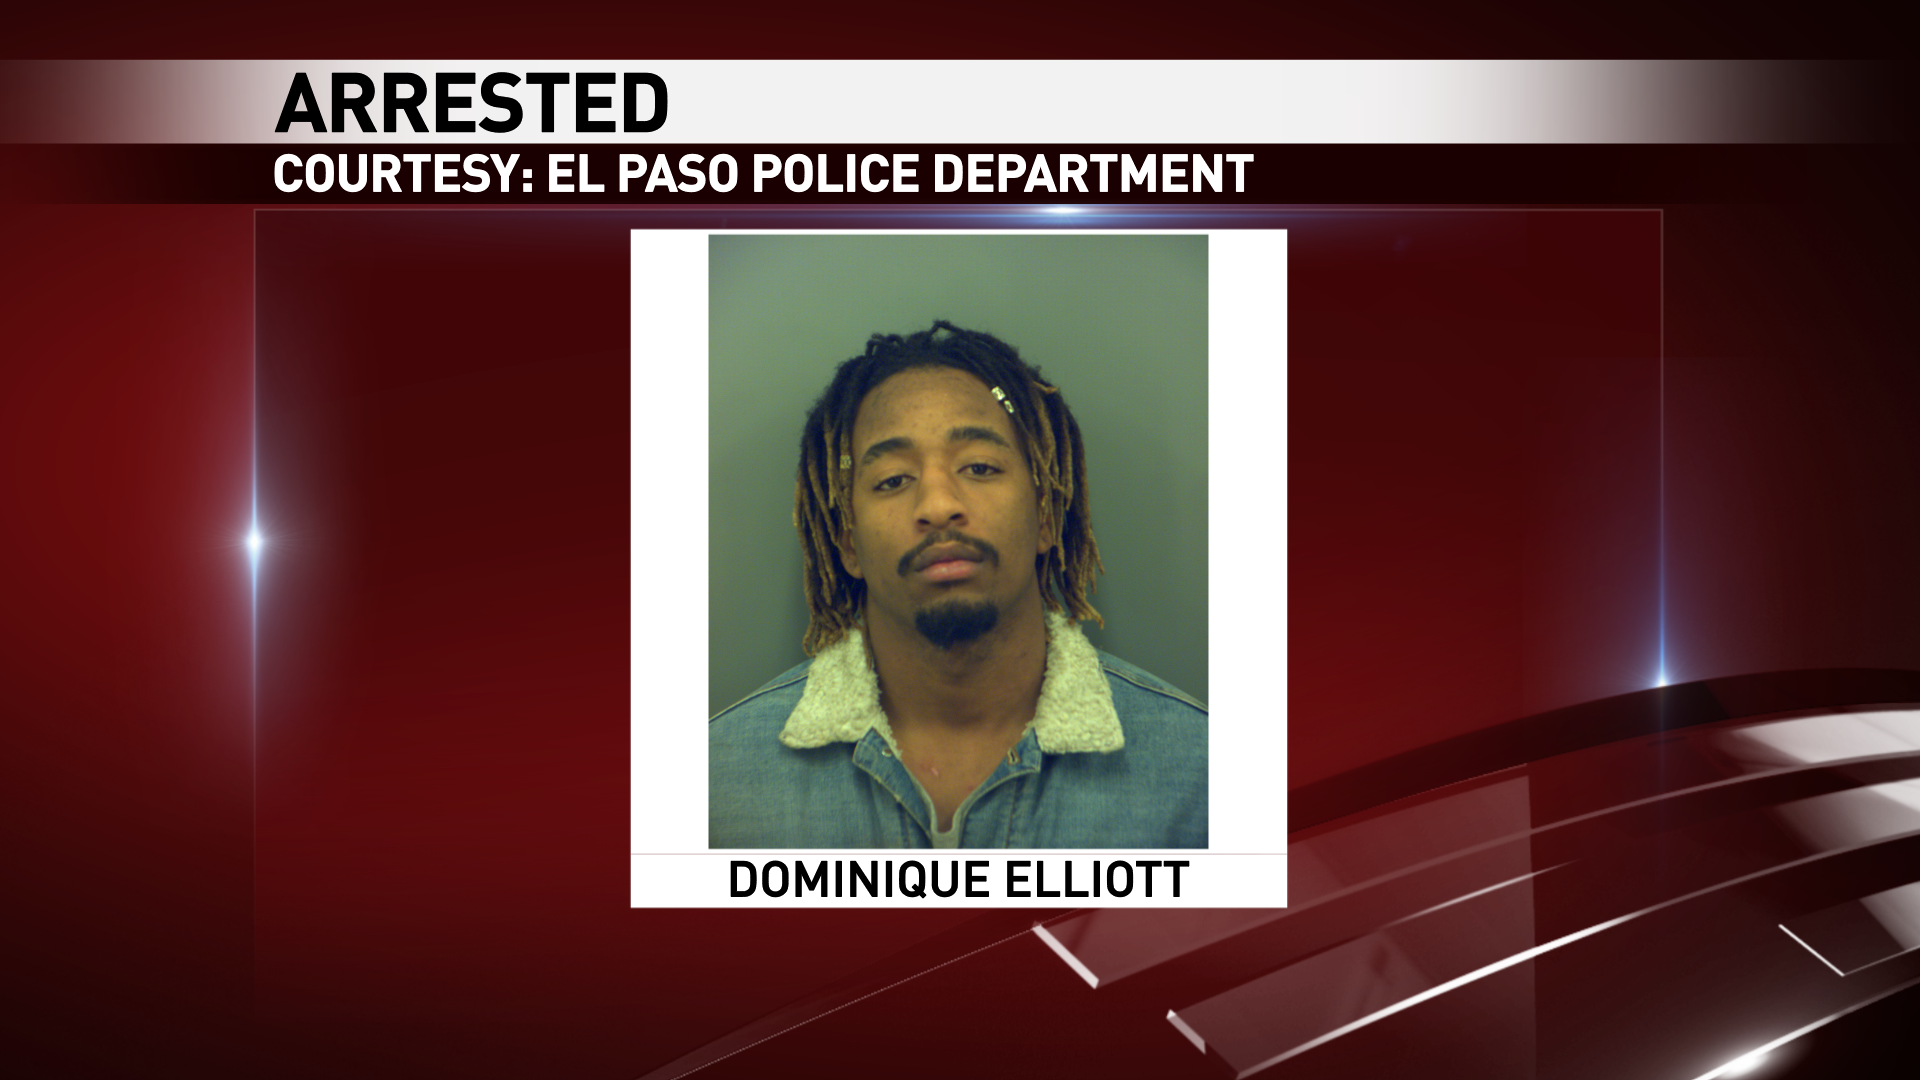 Dominique Elliot, 21, had an outstanding warrant for a sexual assault charge.